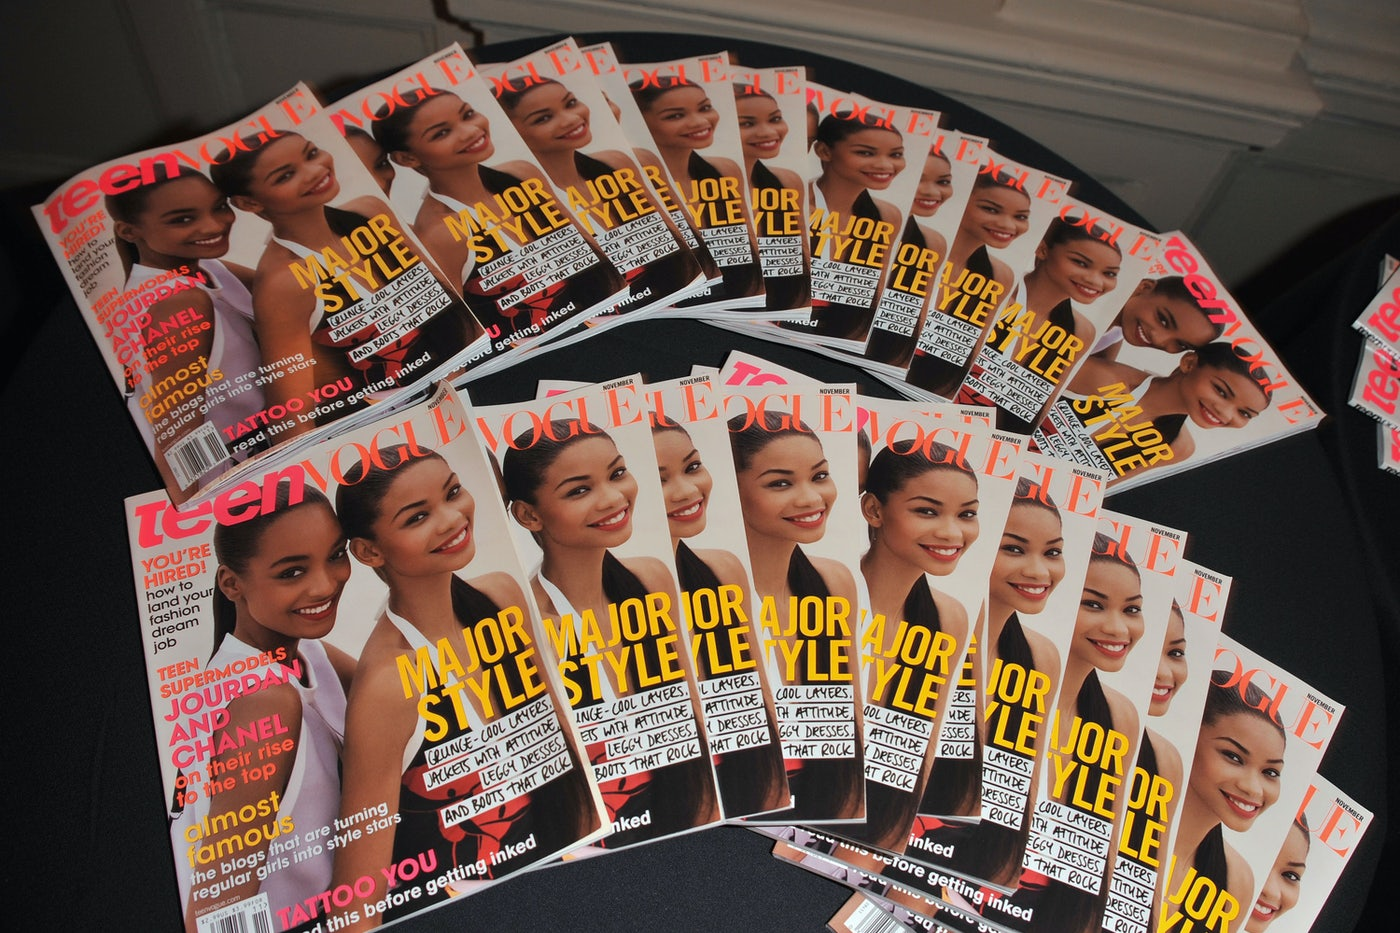 Copies of Teen Vogue magazine are displayed on a table